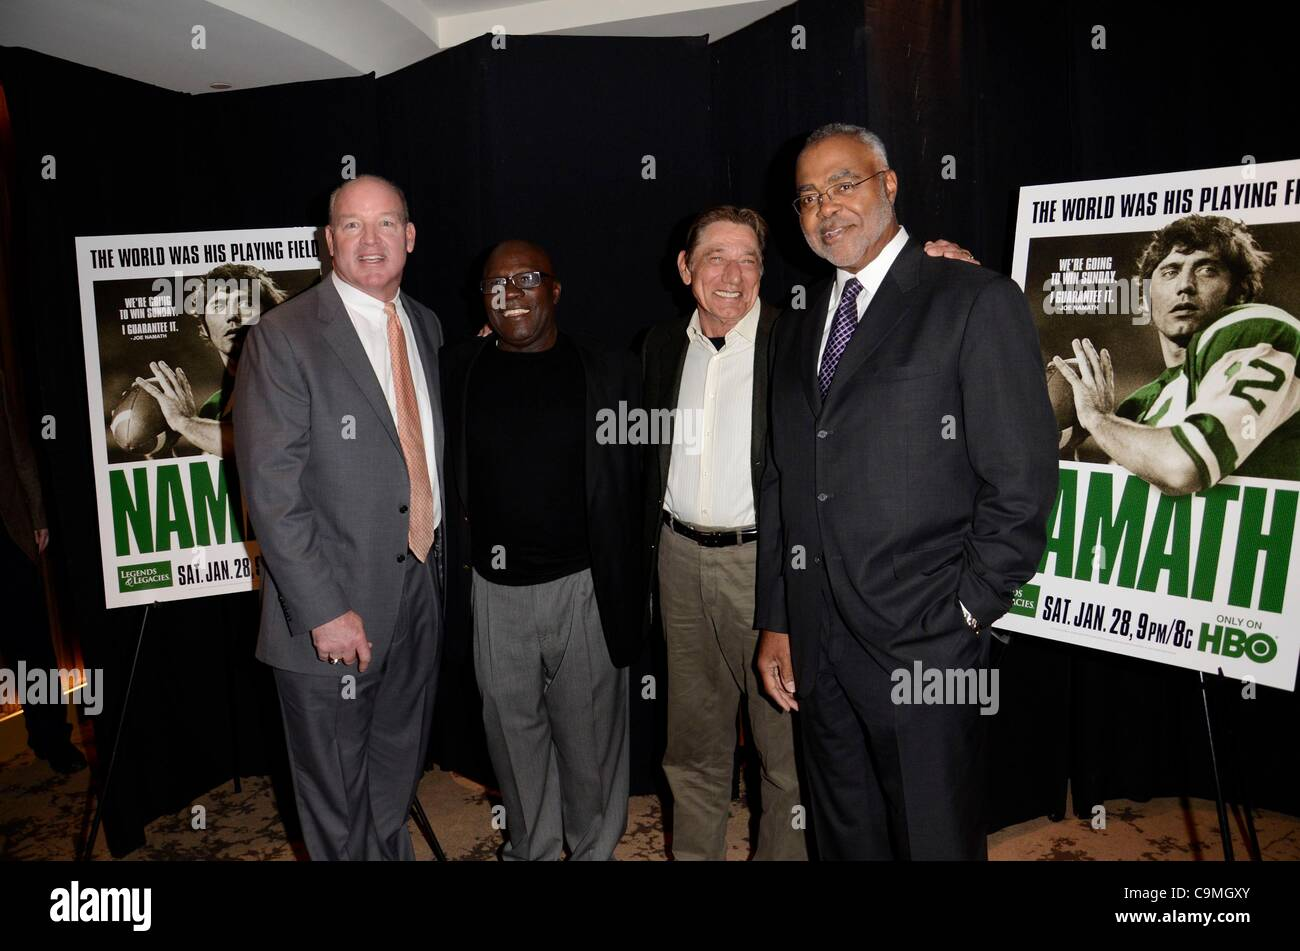 Marty Lyons, Emerson Boozer, Joe Namath, Richard Castor at arrivals for HBO Sports and NFL Films' Premiere of - Stock Image